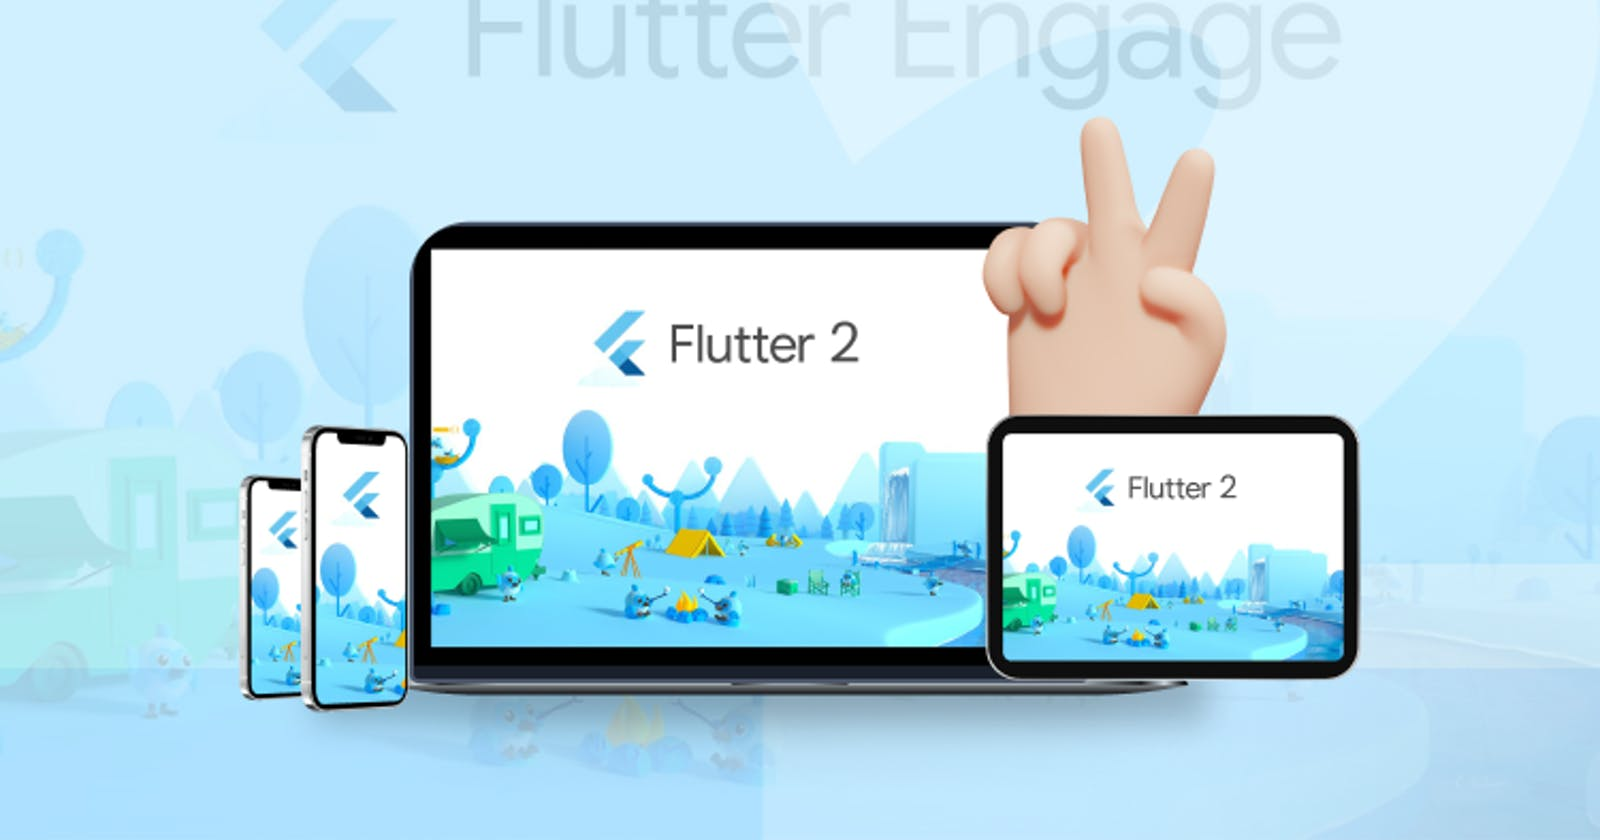 Top 5 Flutter 2.0 features you should know